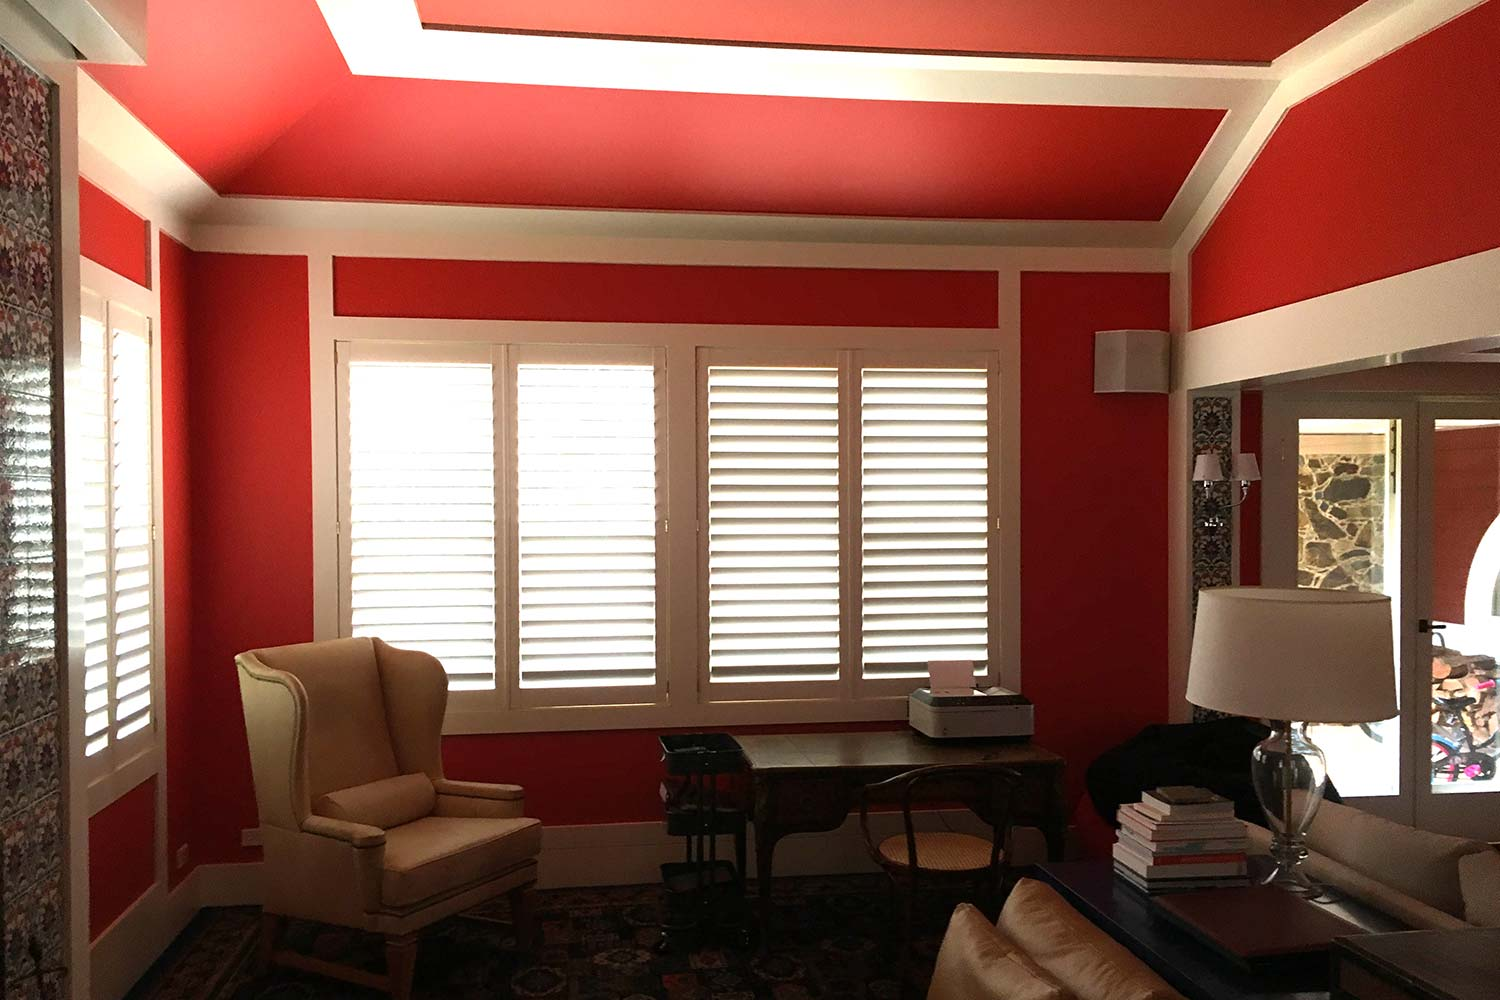 Red walls with striking white woodwork